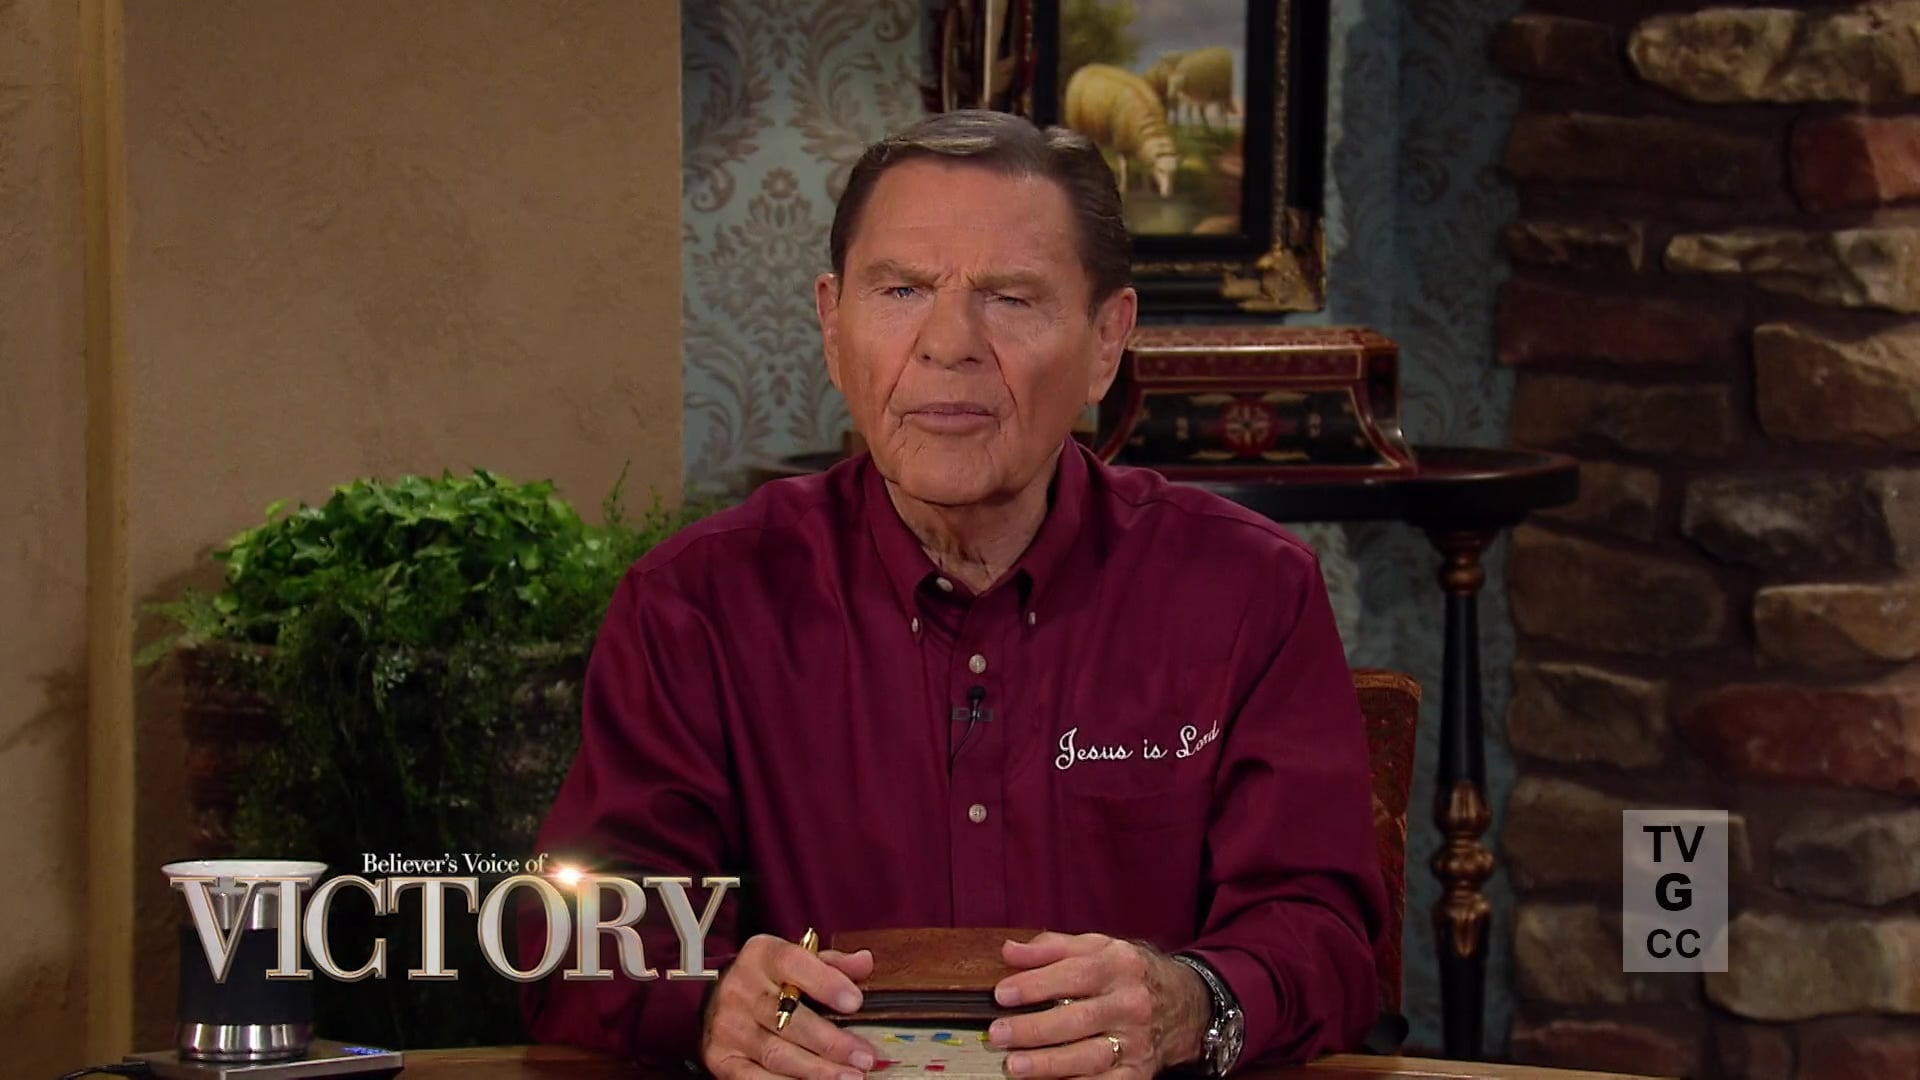 There are natural seasons and spiritual seasons! Watch Believer's Voice of Victory as Kenneth Copeland and Professor Greg Stephens discuss why you don't have to be worried when you see the news, because God's ways can be known. You can be sure that judgment is coming!